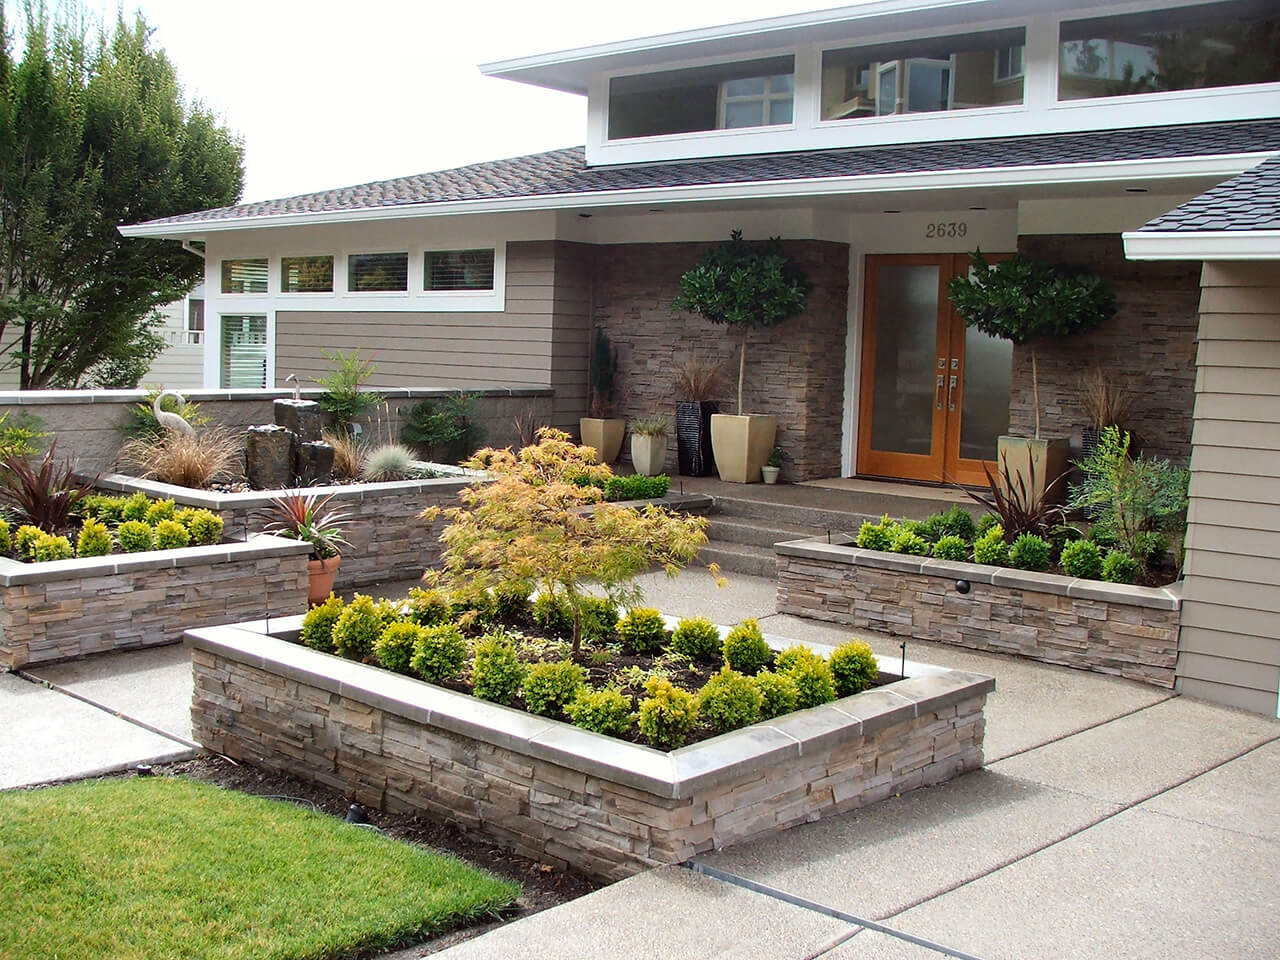 20 brilliant front garden landscaping ideas style motivation for Front garden ideas